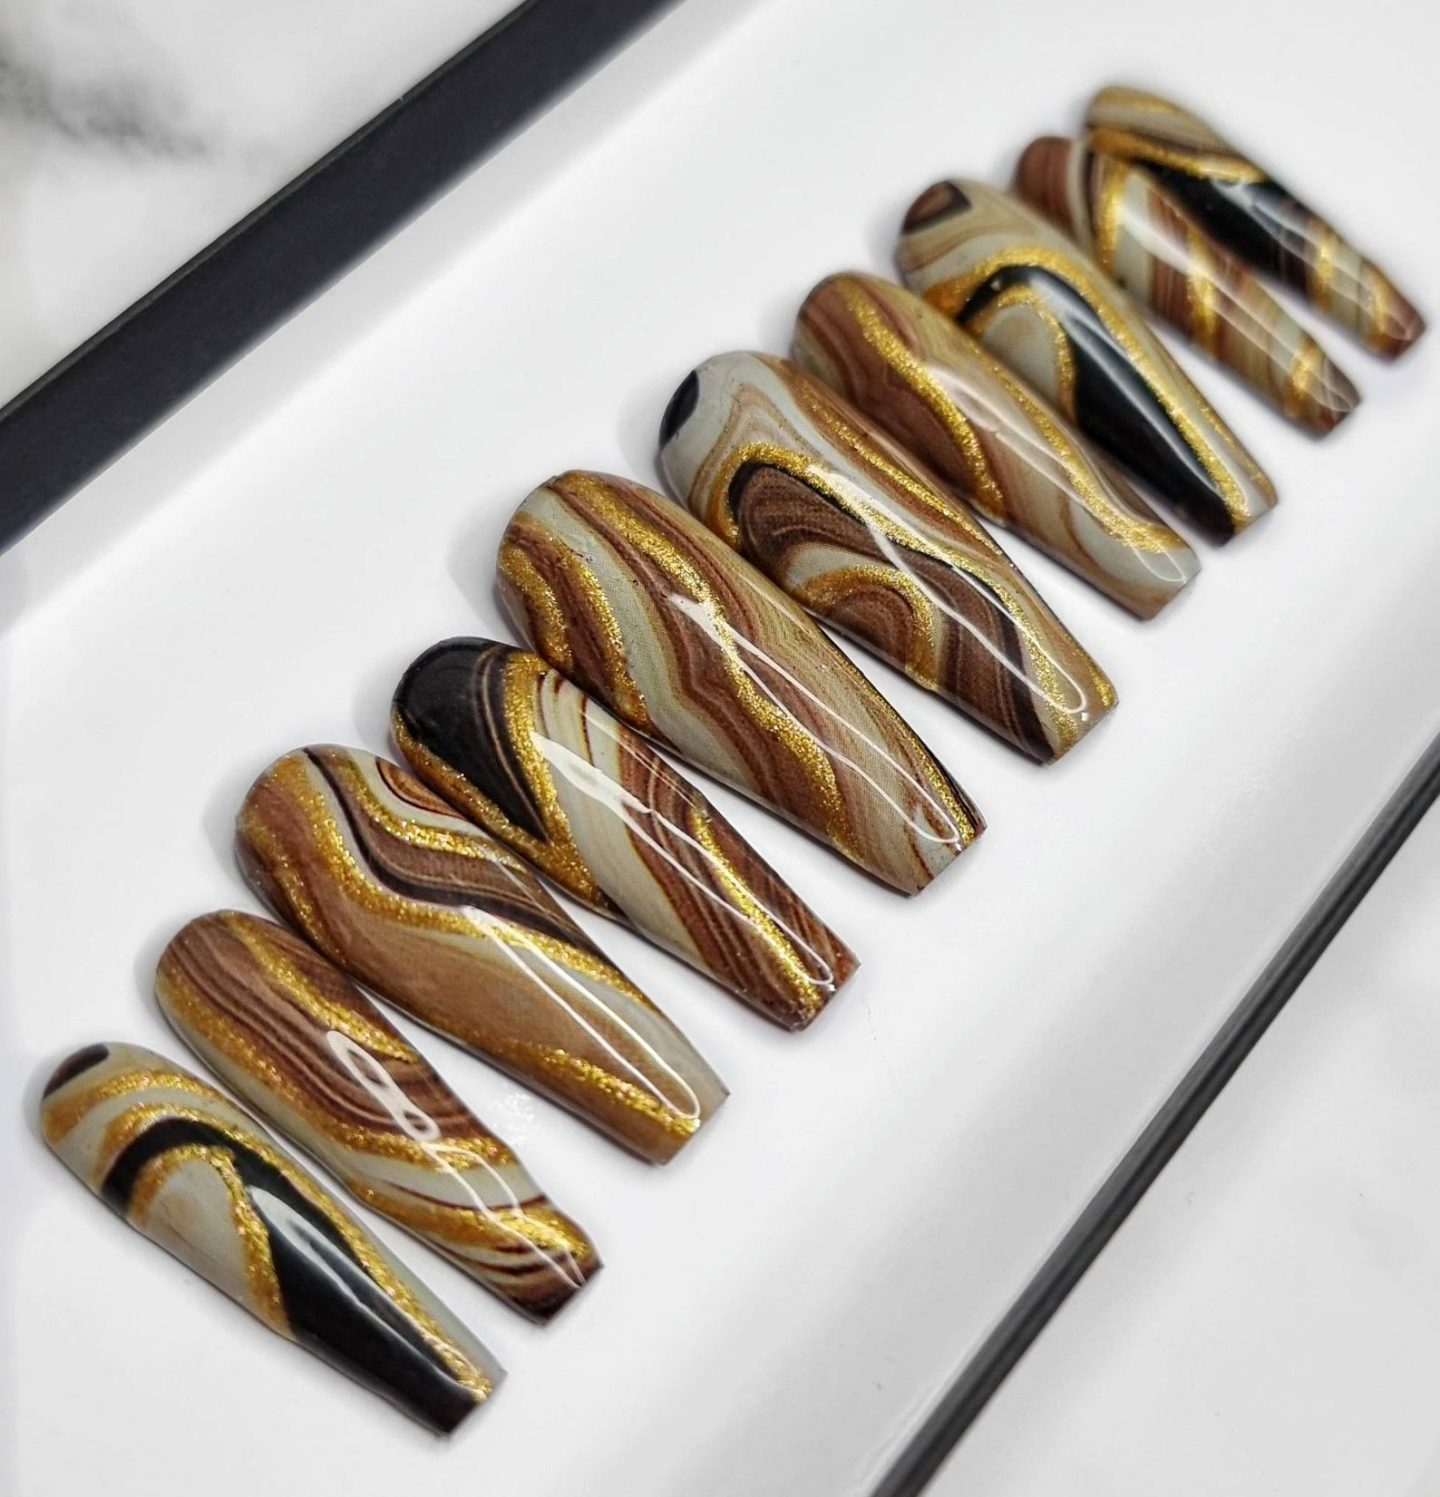 Brown marble nails with gold swirls